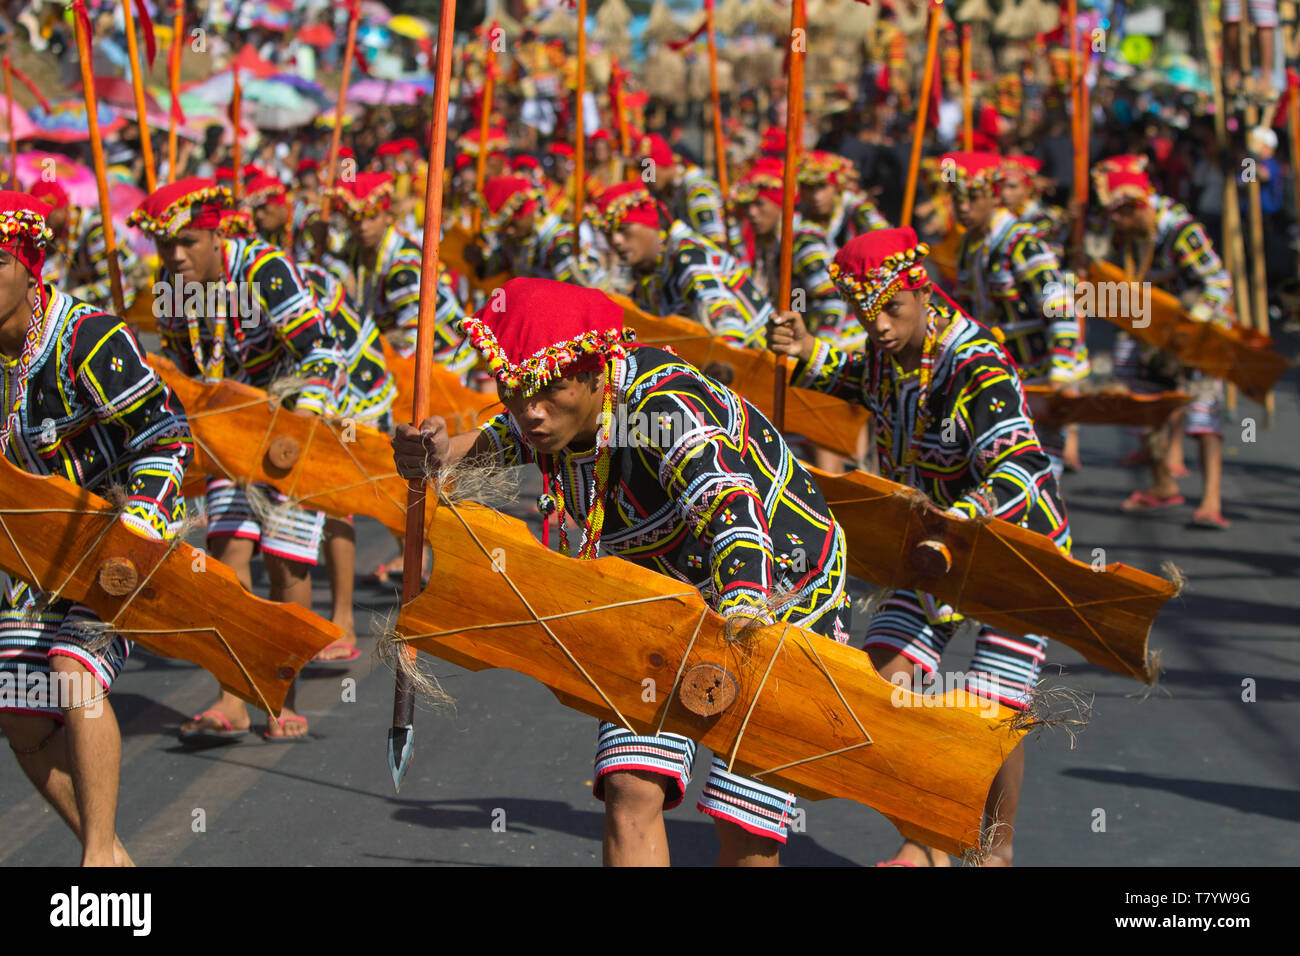 Mindanao Festival Stock Photos & Mindanao Festival Stock Images - Alamy